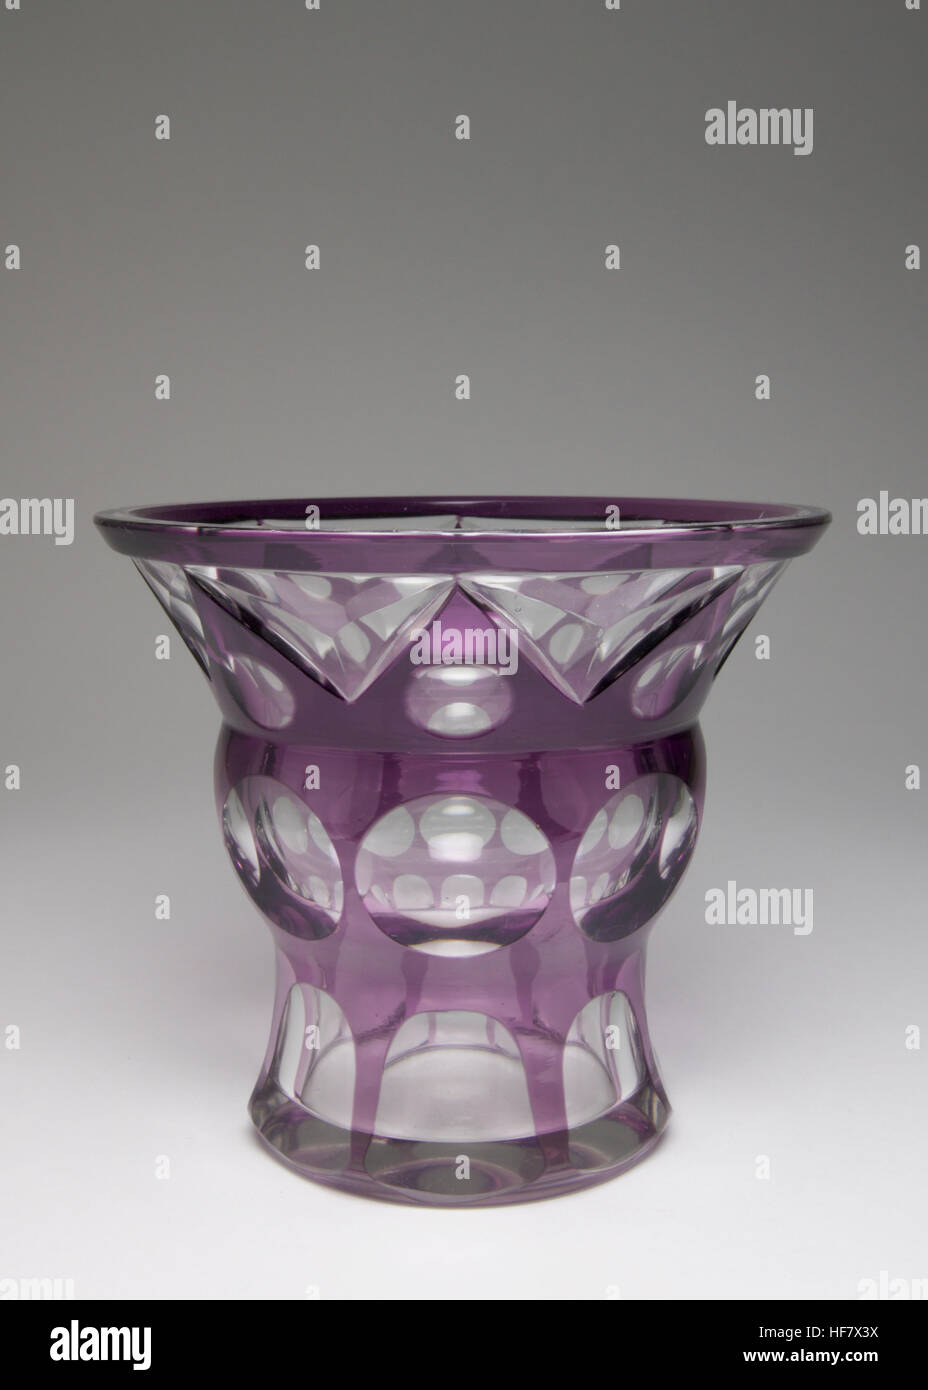 Stylish Art Deco Haida  glass vase, cased is purple and deep cut with a geometric design, made circa 1920. - Stock Image